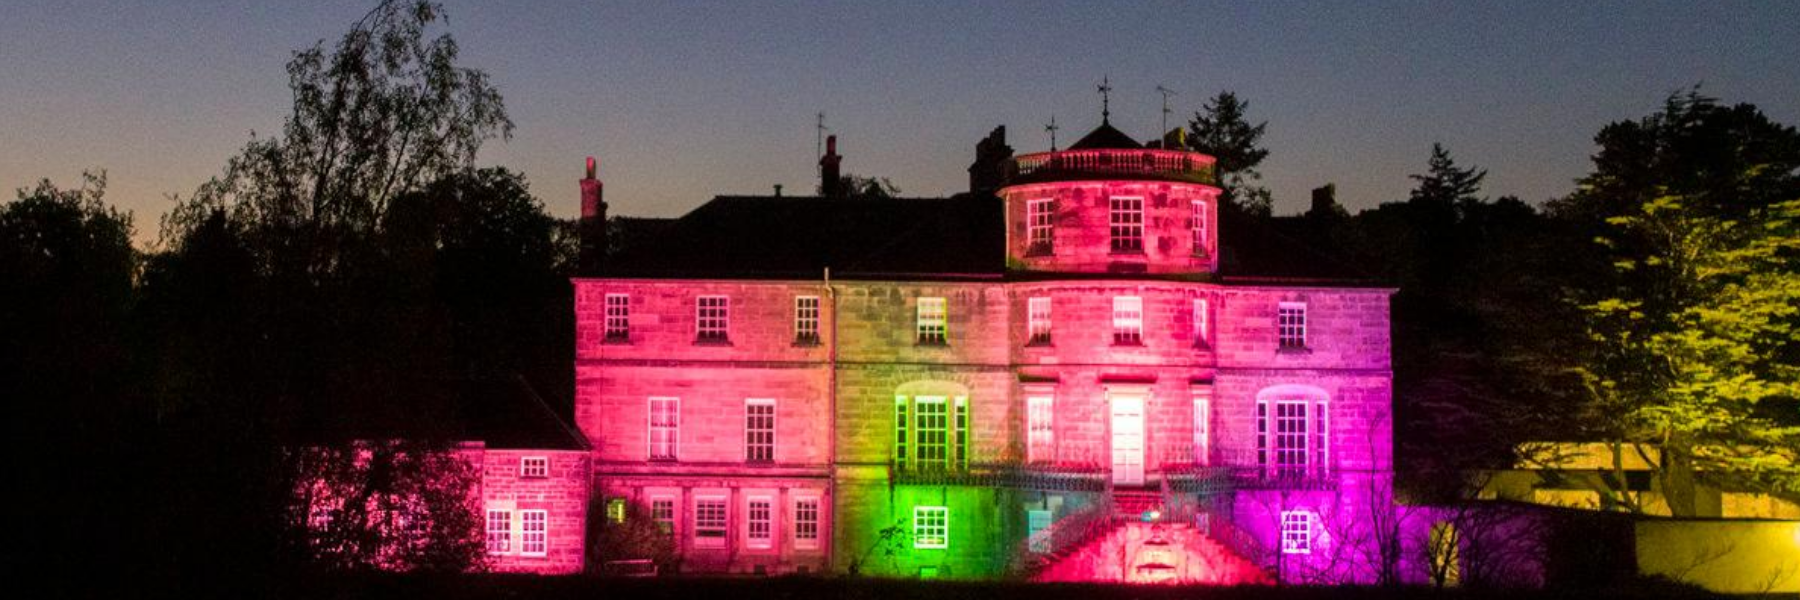 Ravelston House In Rainbow for LGBT Support